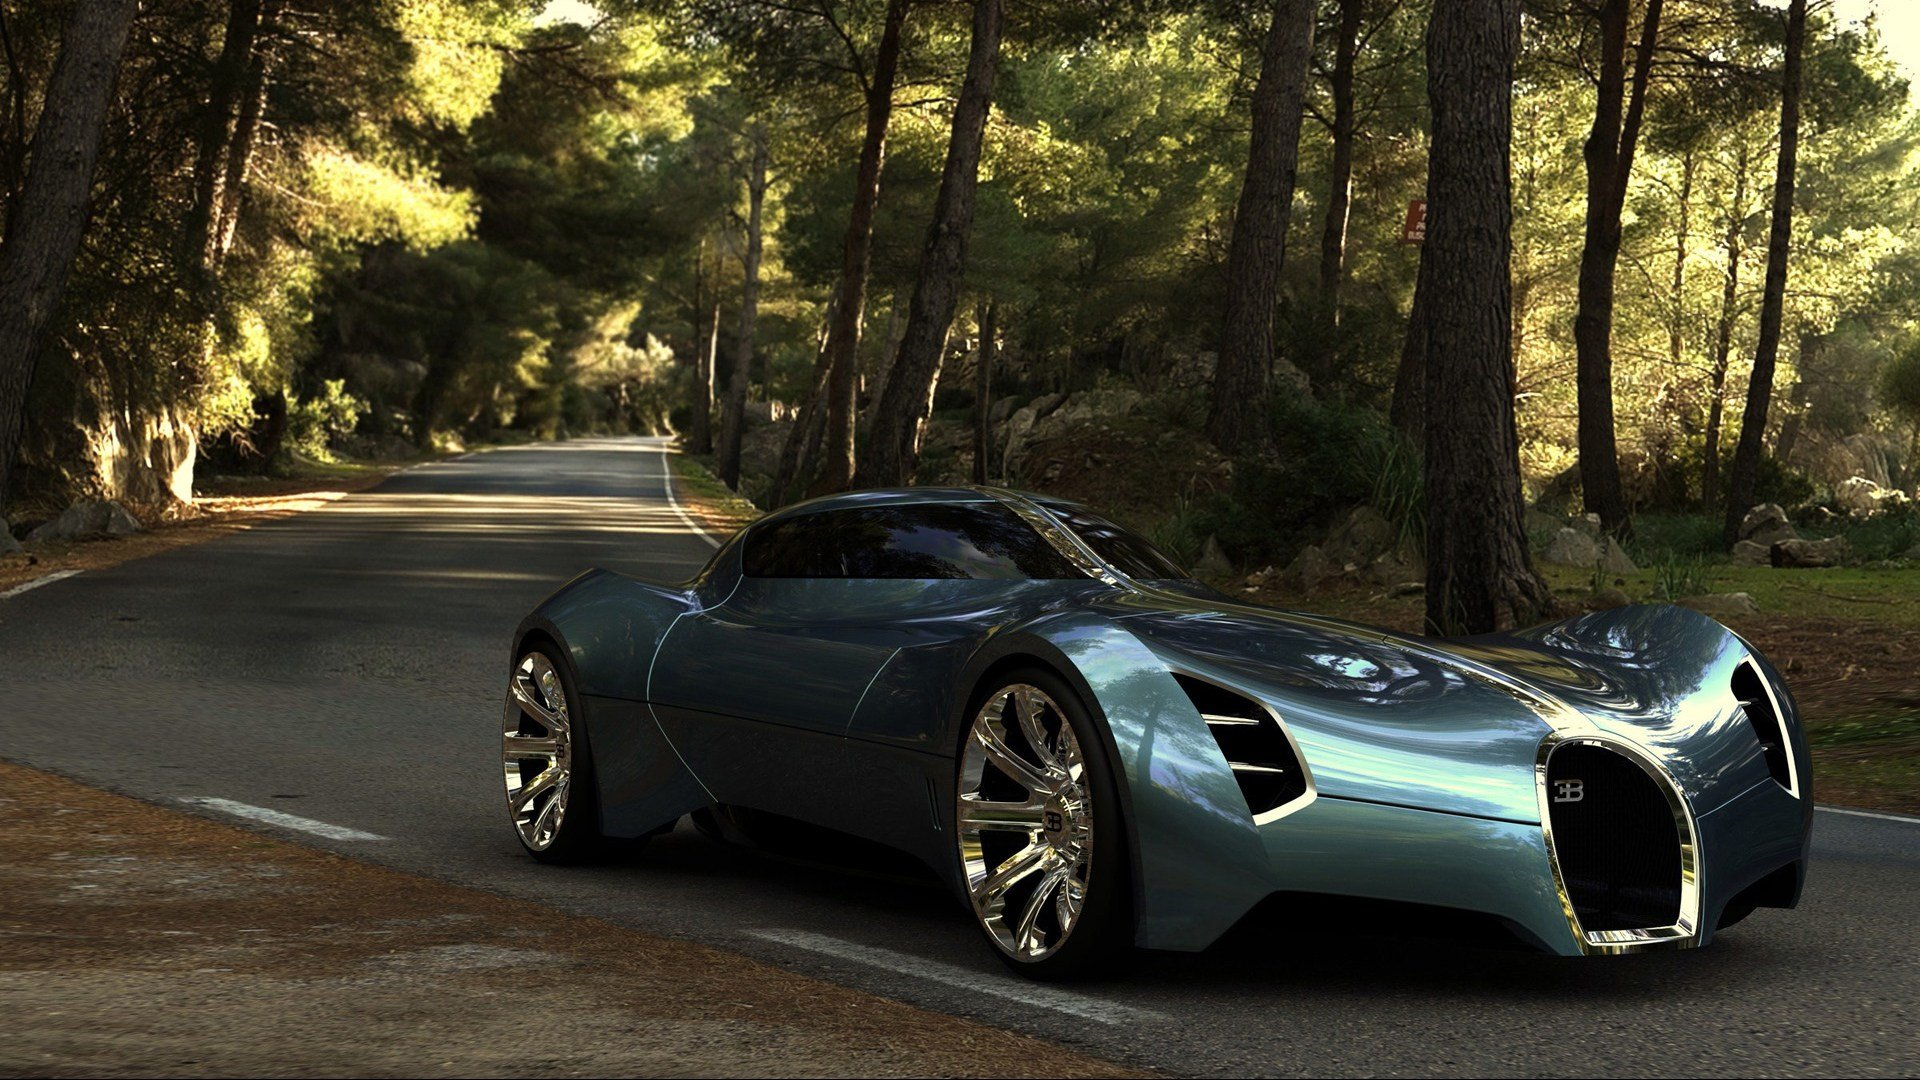 Latest The Bugatti Concept That Will Bl*W Your Mind Automotive Free Download